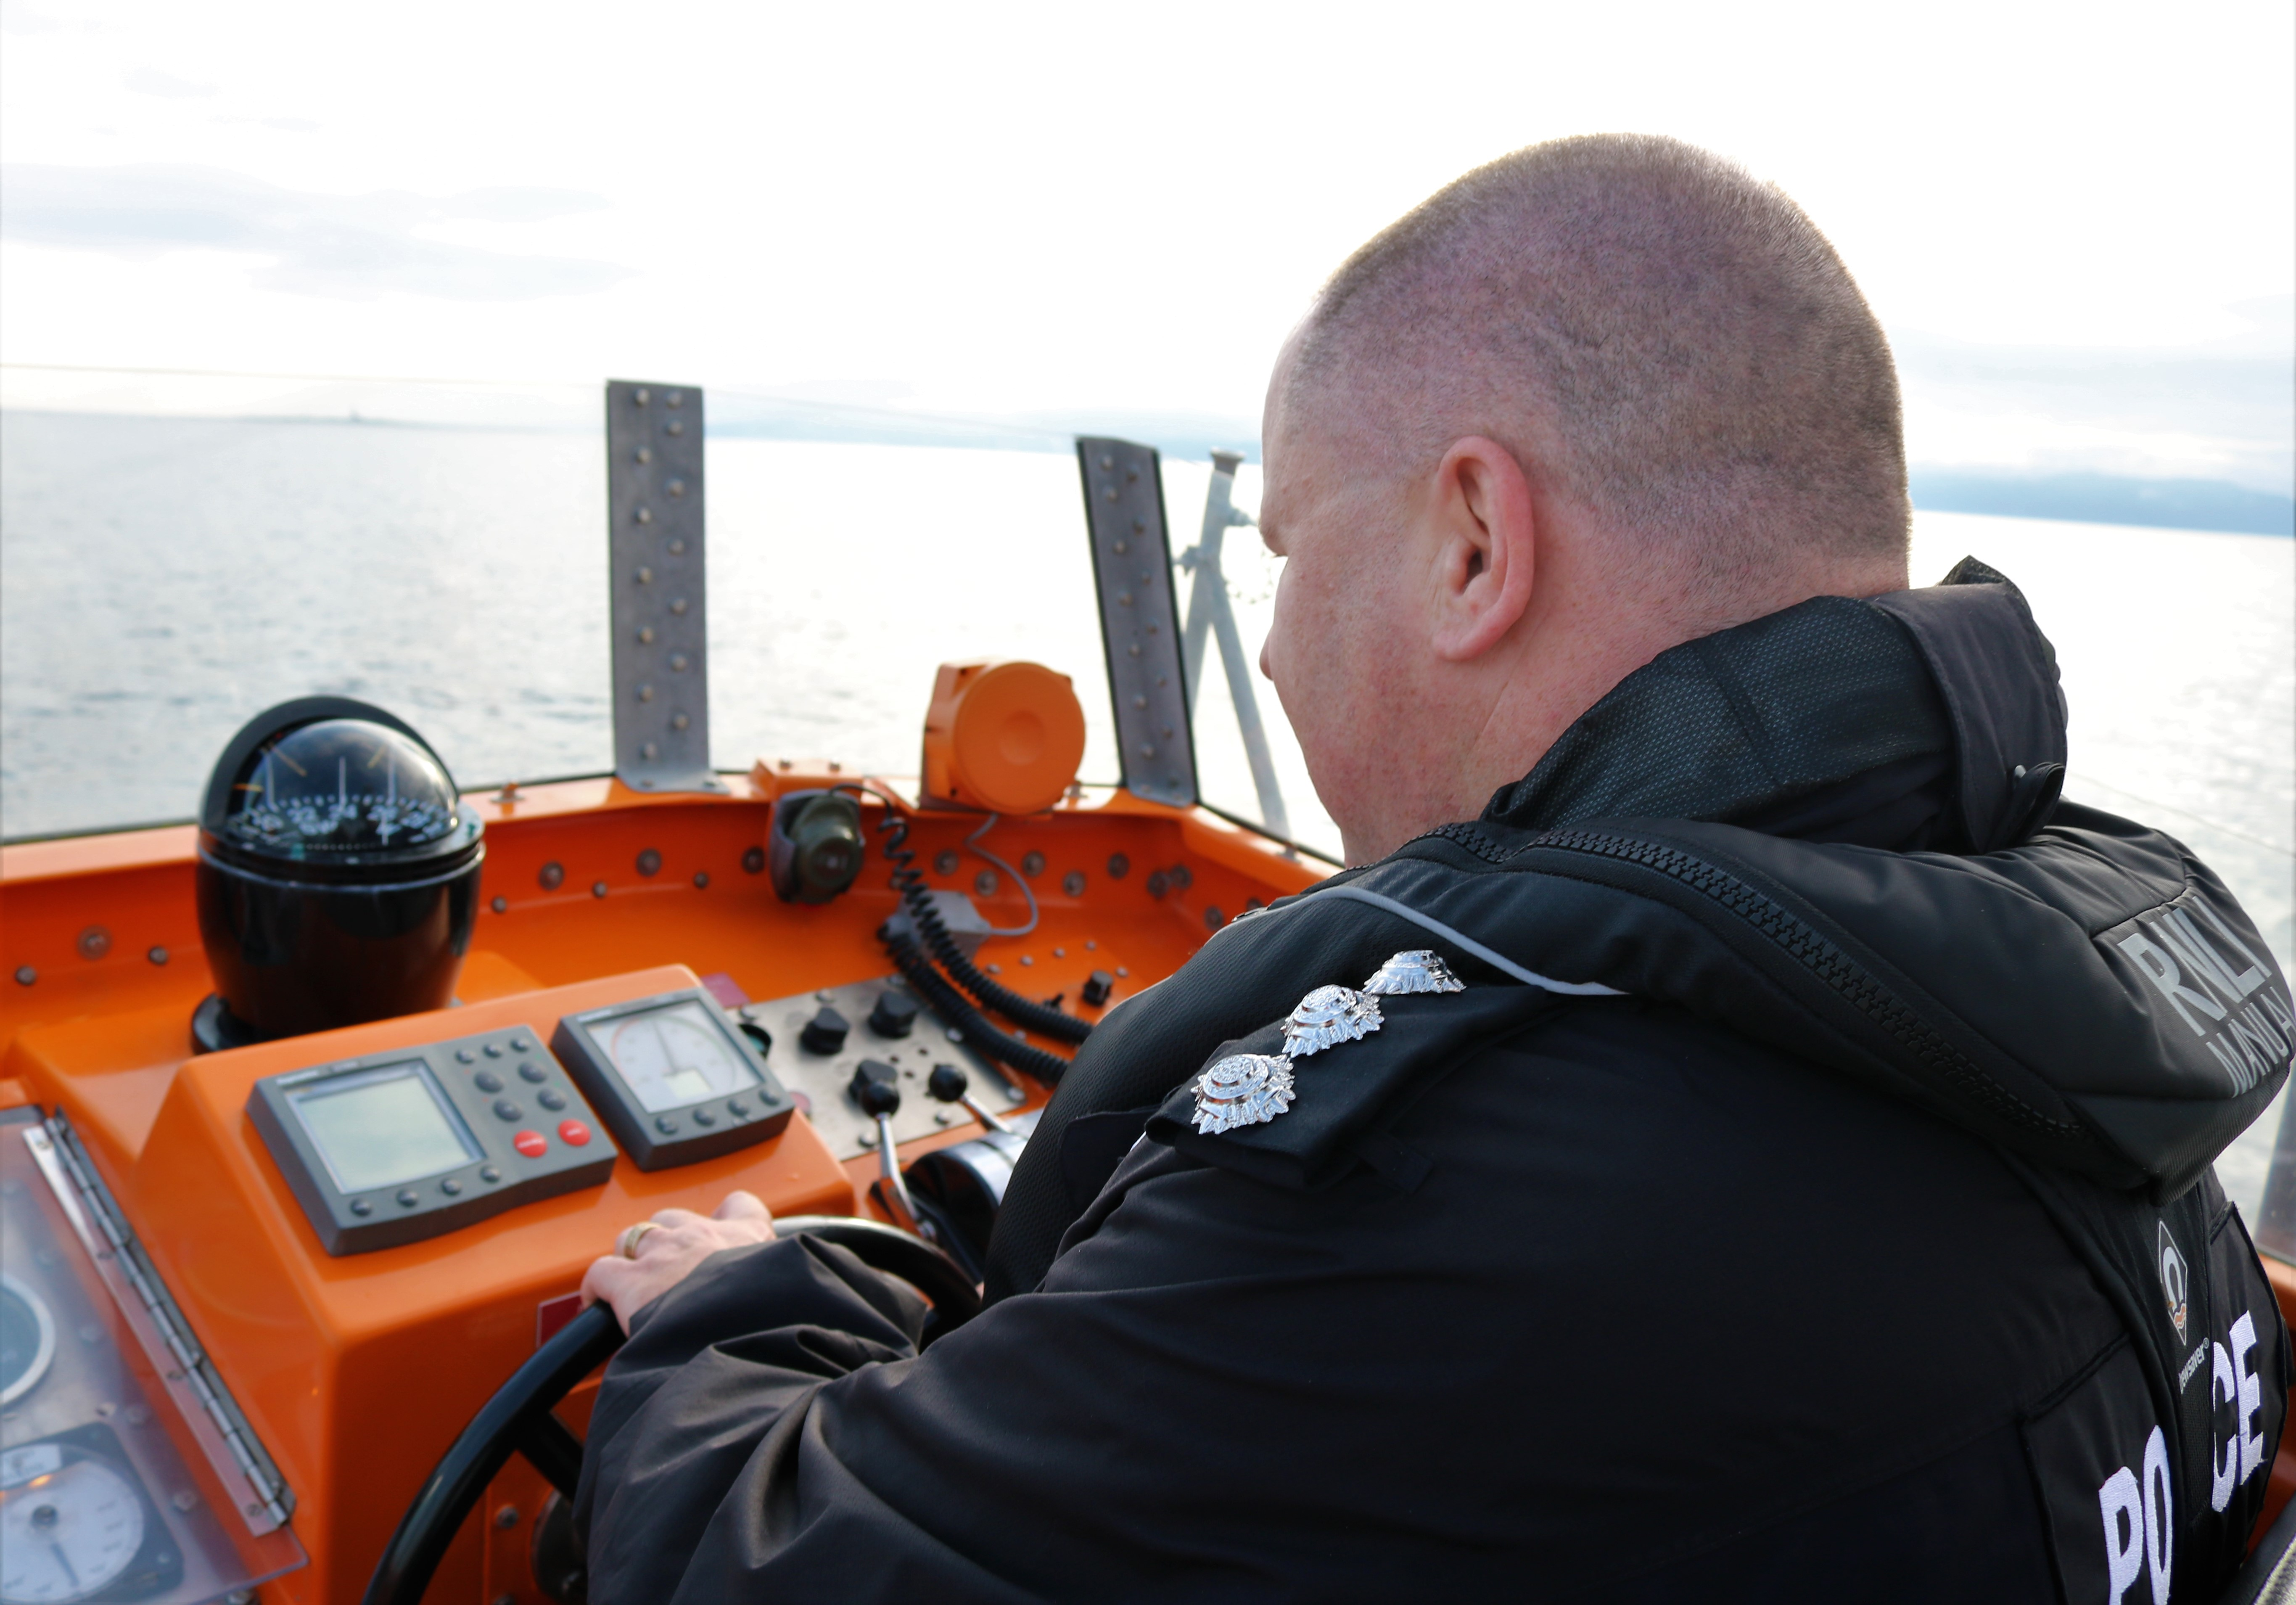 Chief Inspector Brian Anderson takes the helm of RNLB Jim Moffat